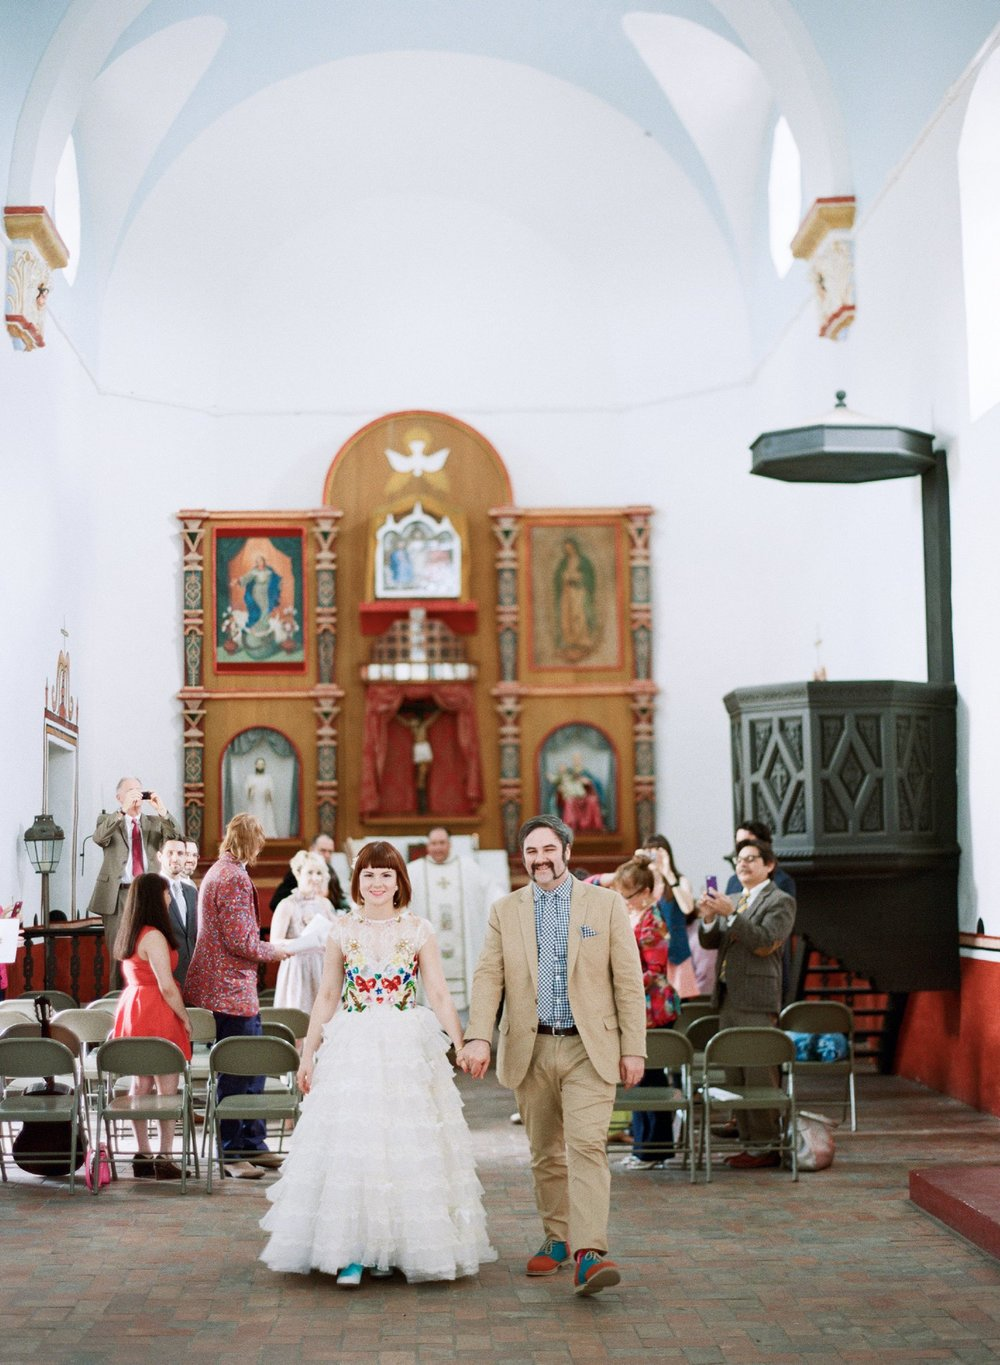 eclectic texan wedding the connoisseur of cute wedding texas wedding photographer shannon griffin photography_0020.jpg